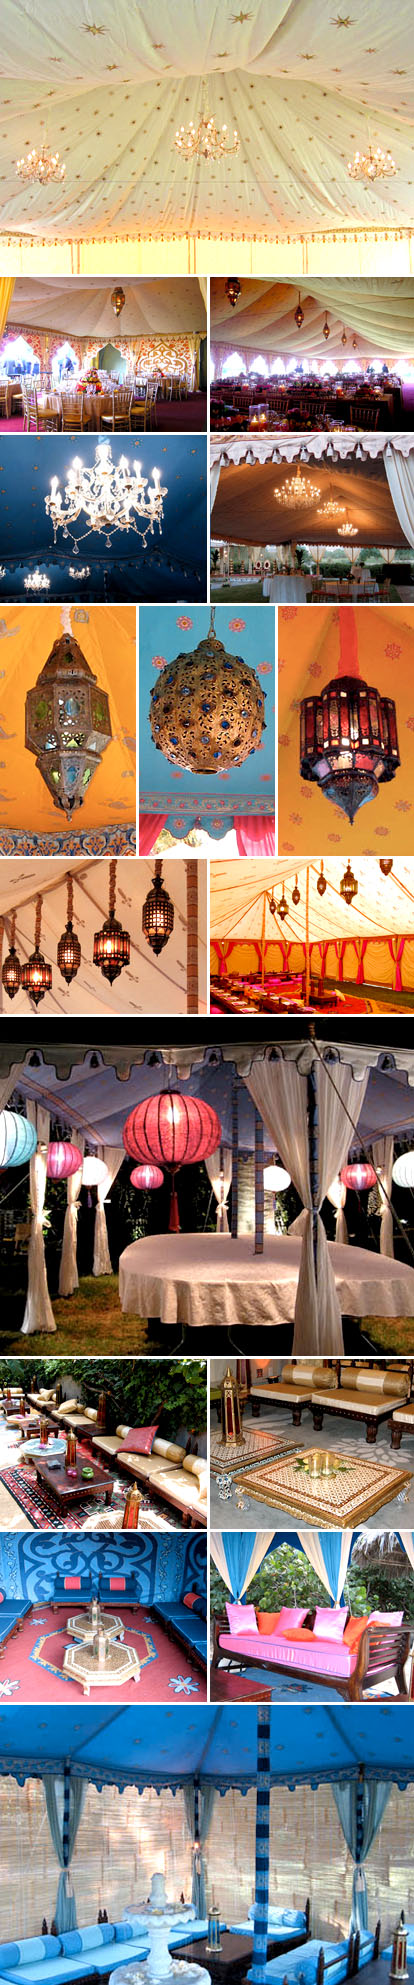 Raj Tents wedding lighting and decor rental